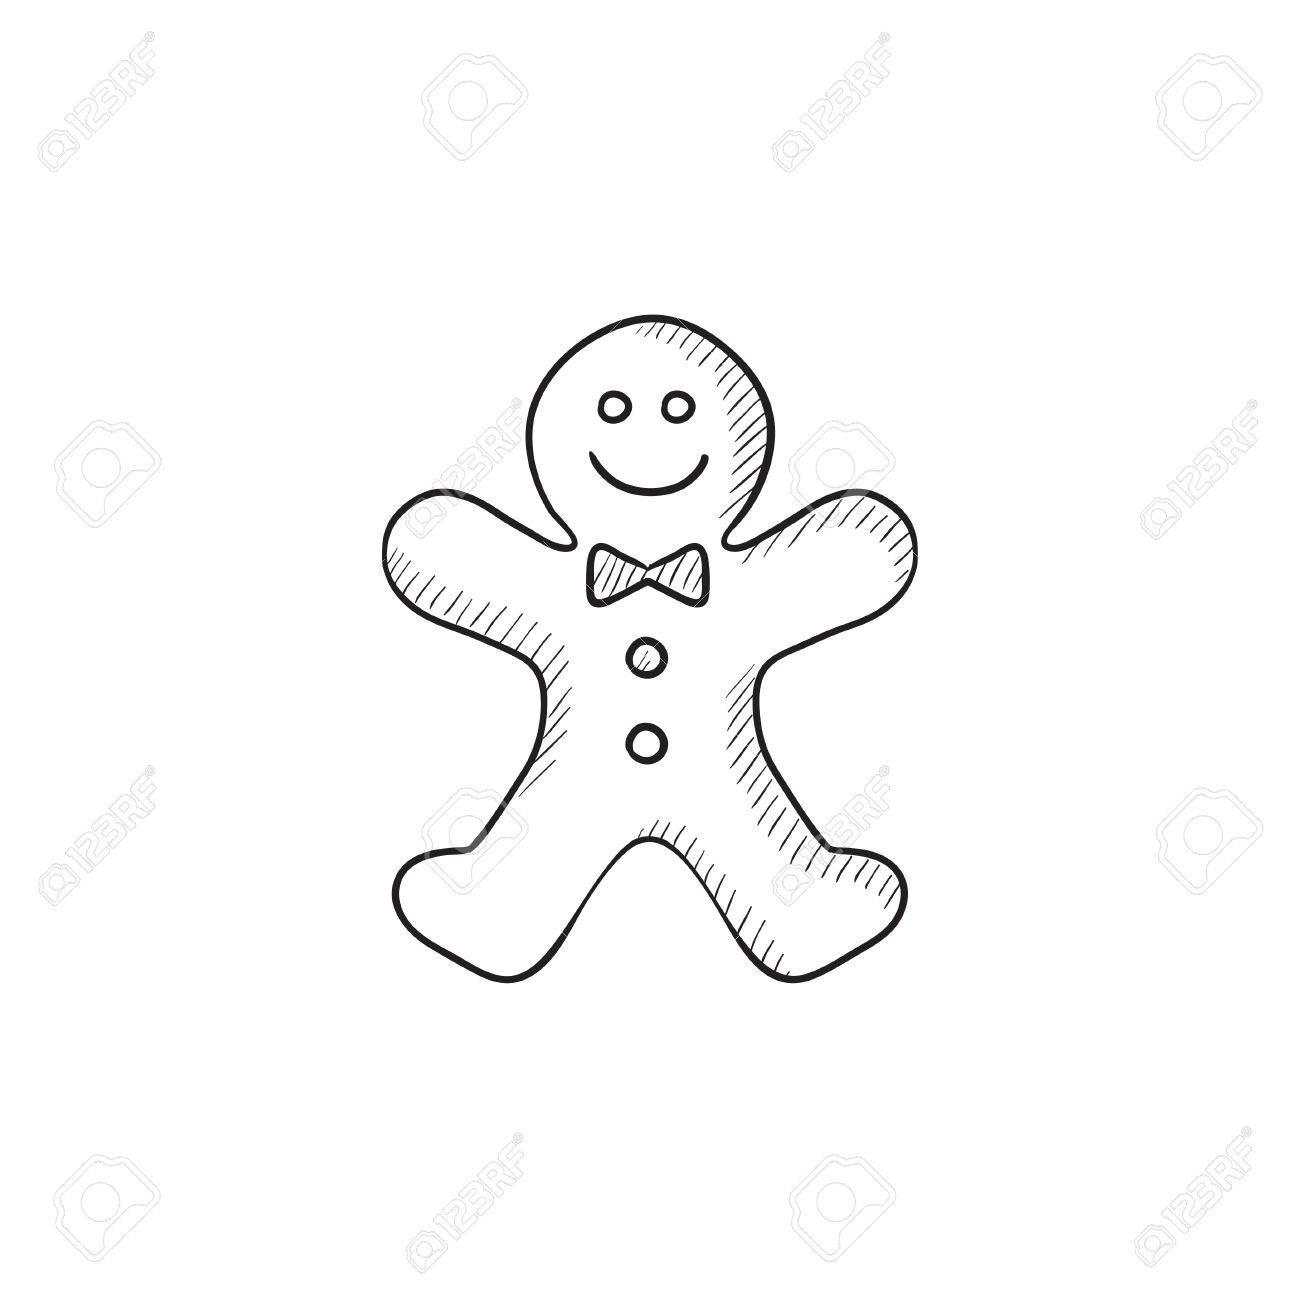 1300x1300 Gingerbread Man Vector Sketch Icon Isolated On Background. Hand